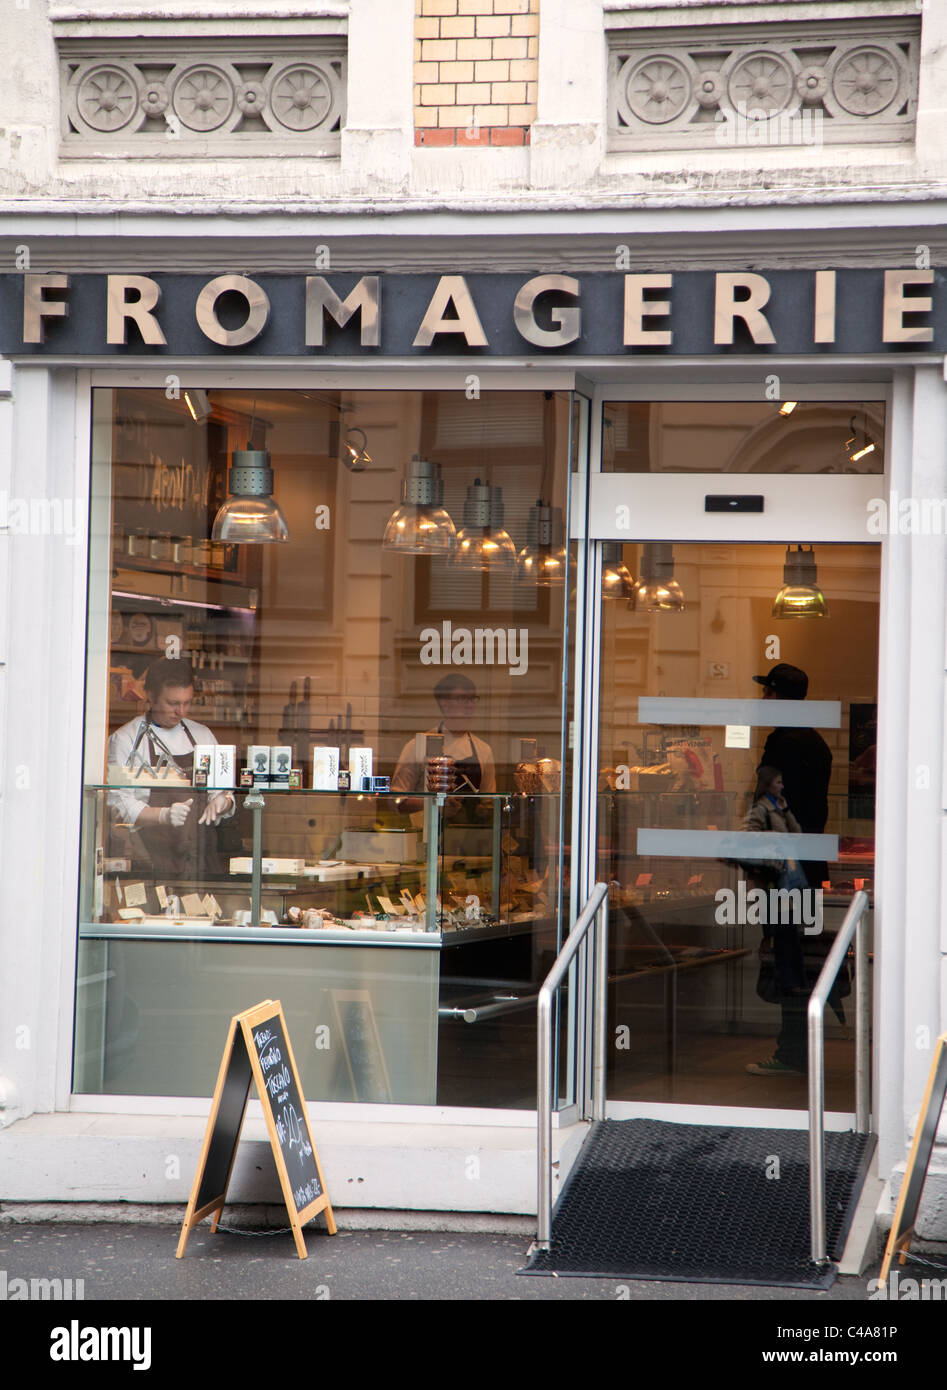 Fromagerie in Oslo, capital city of Norway - Stock Image